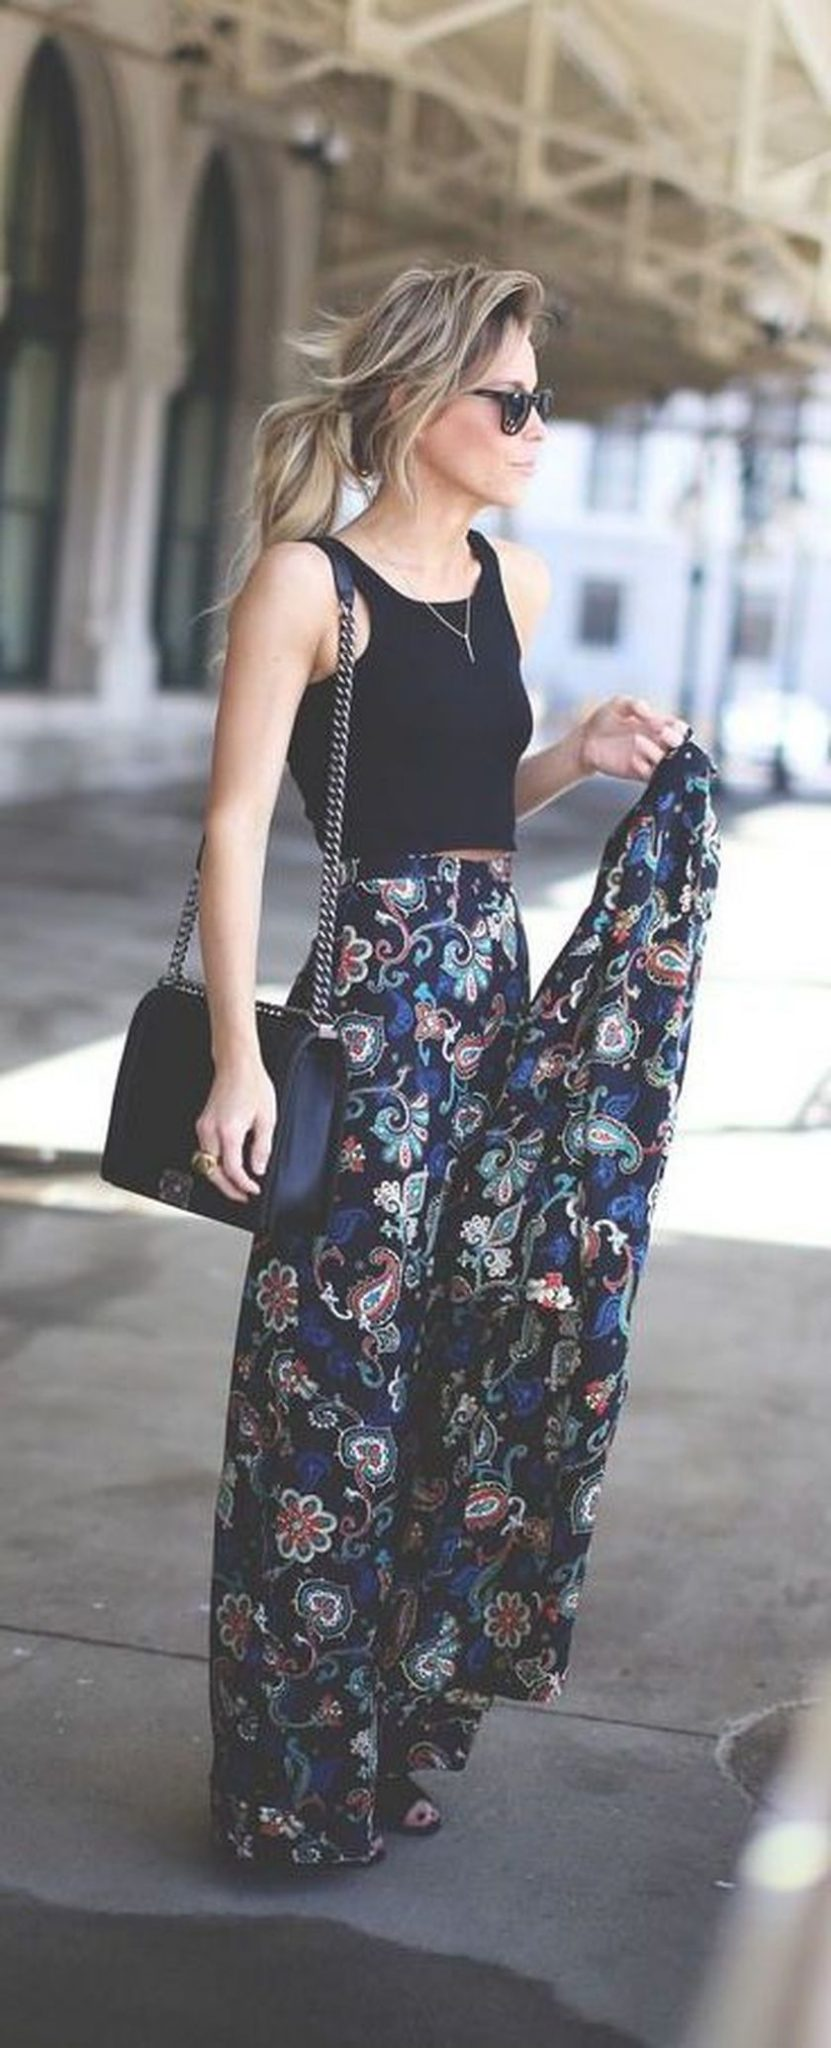 Summers casual maxi skirts ideas 59